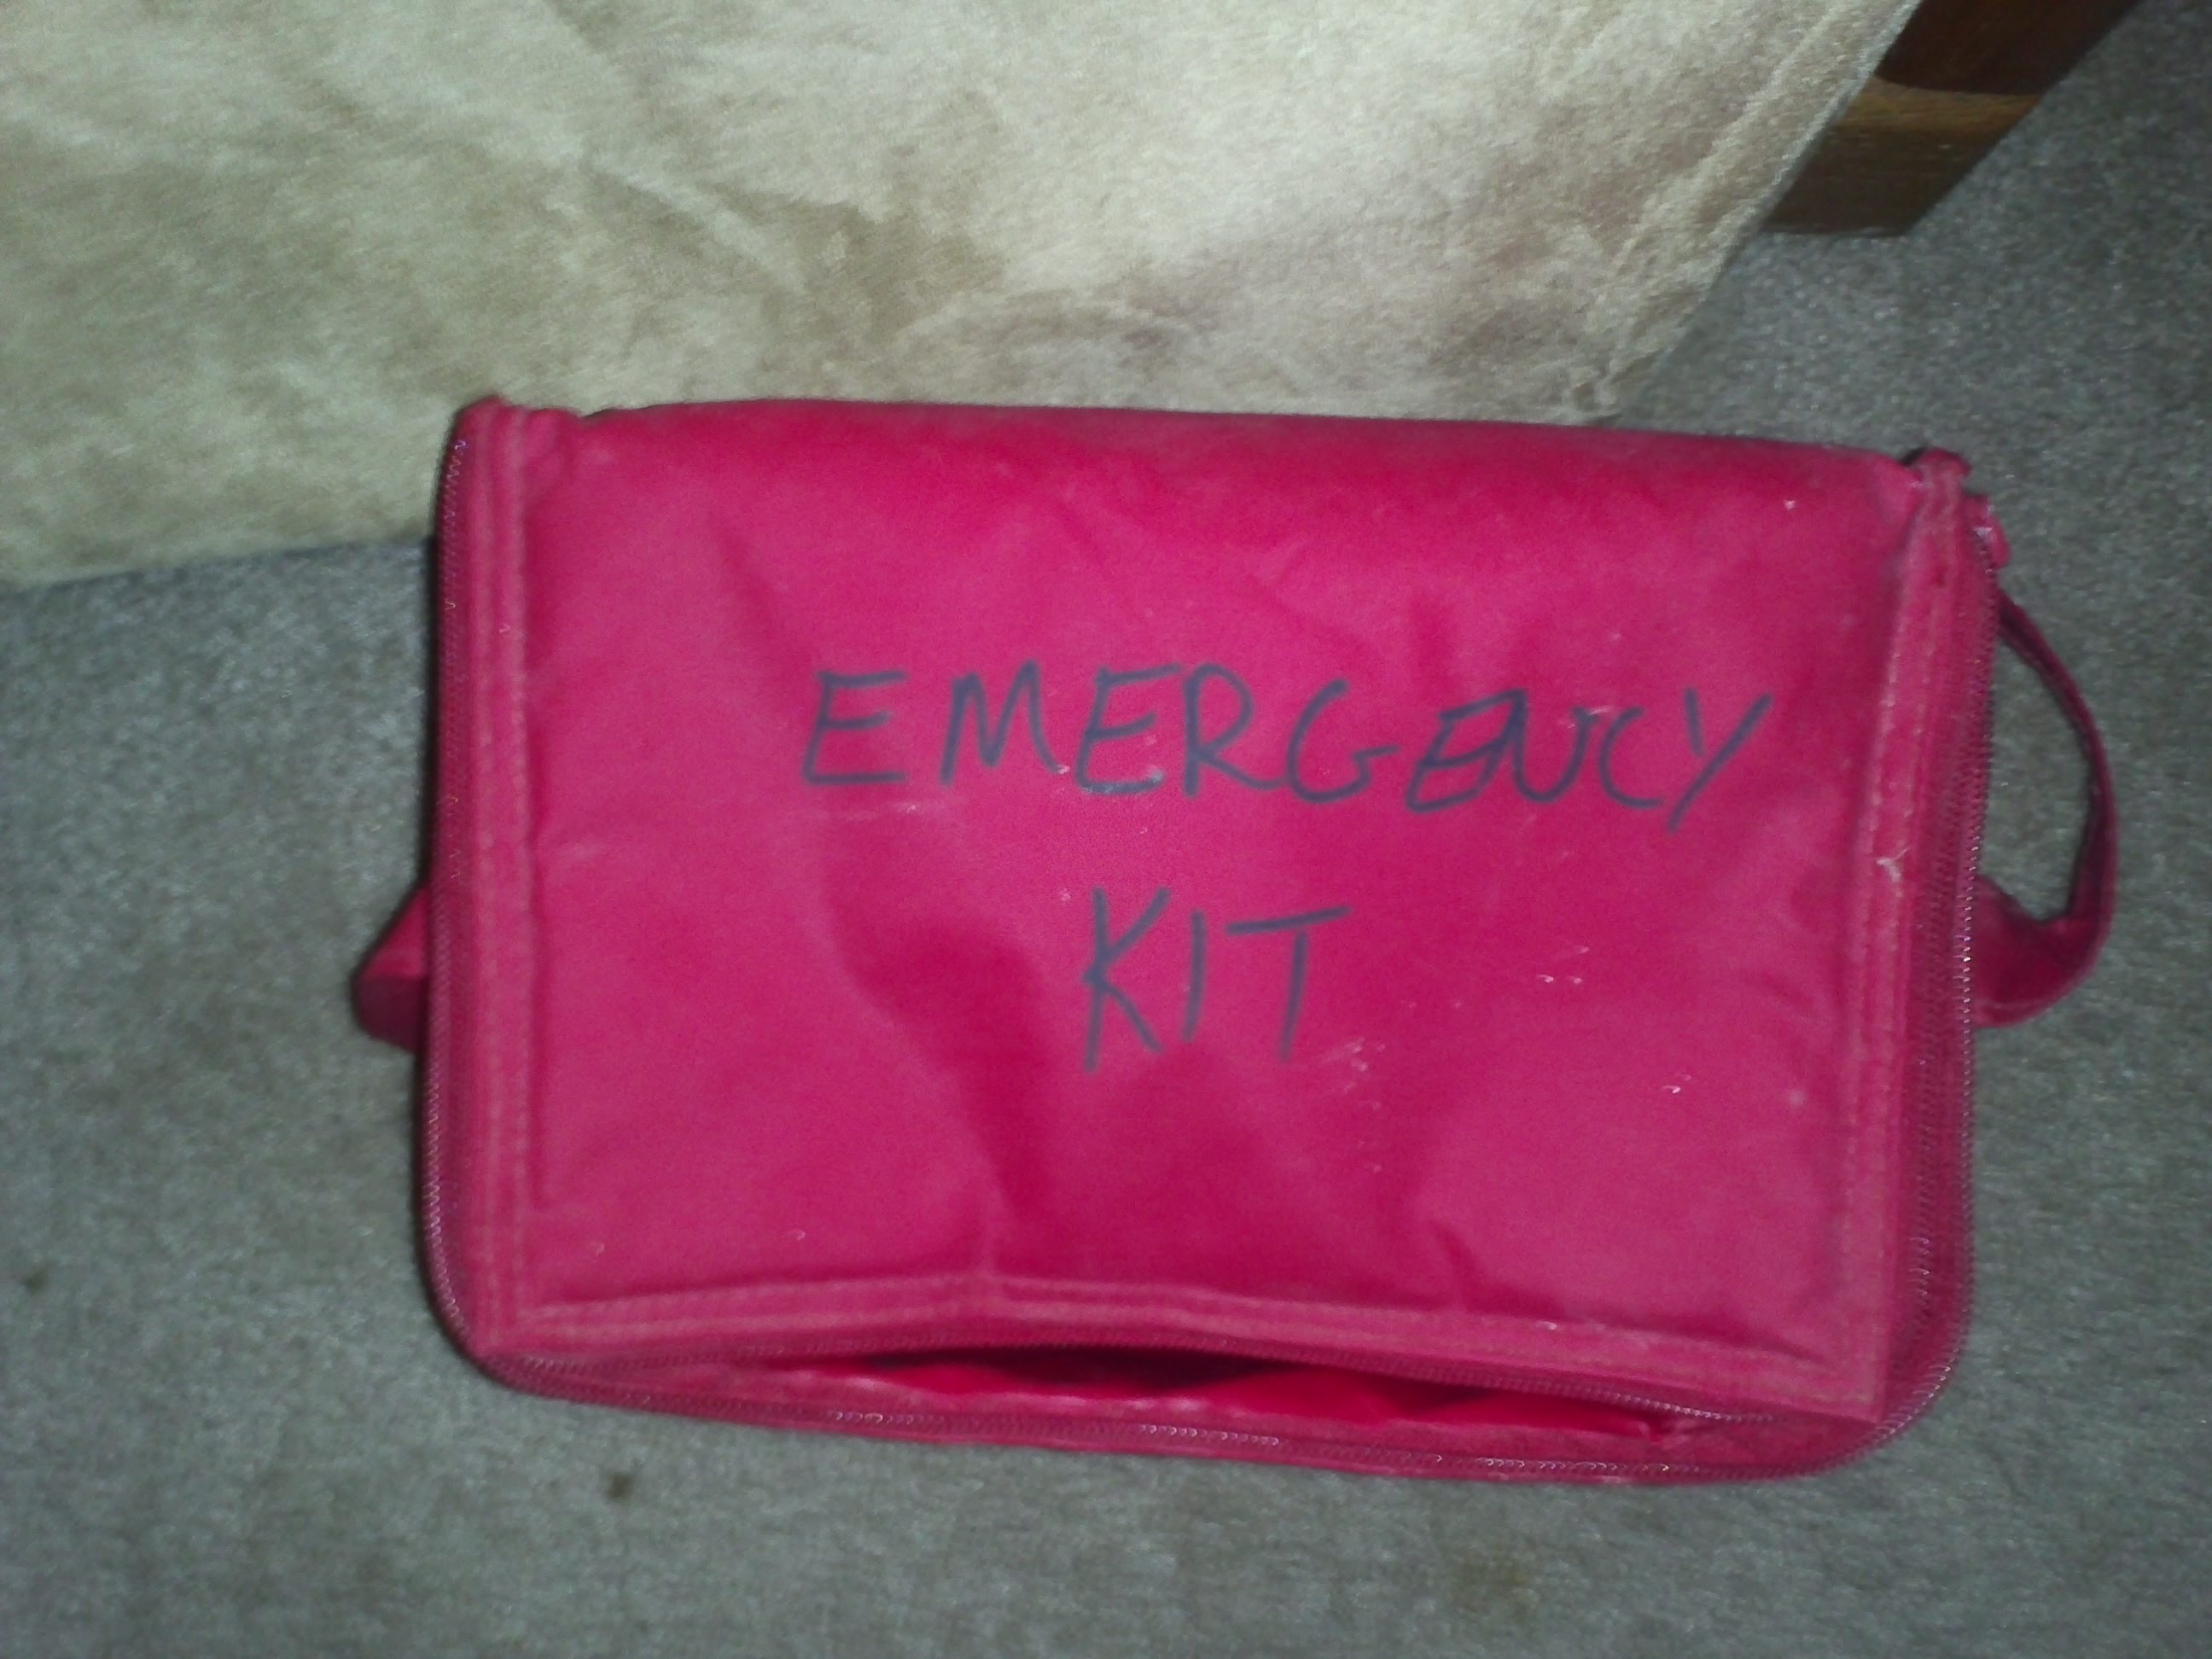 Emergency! kit